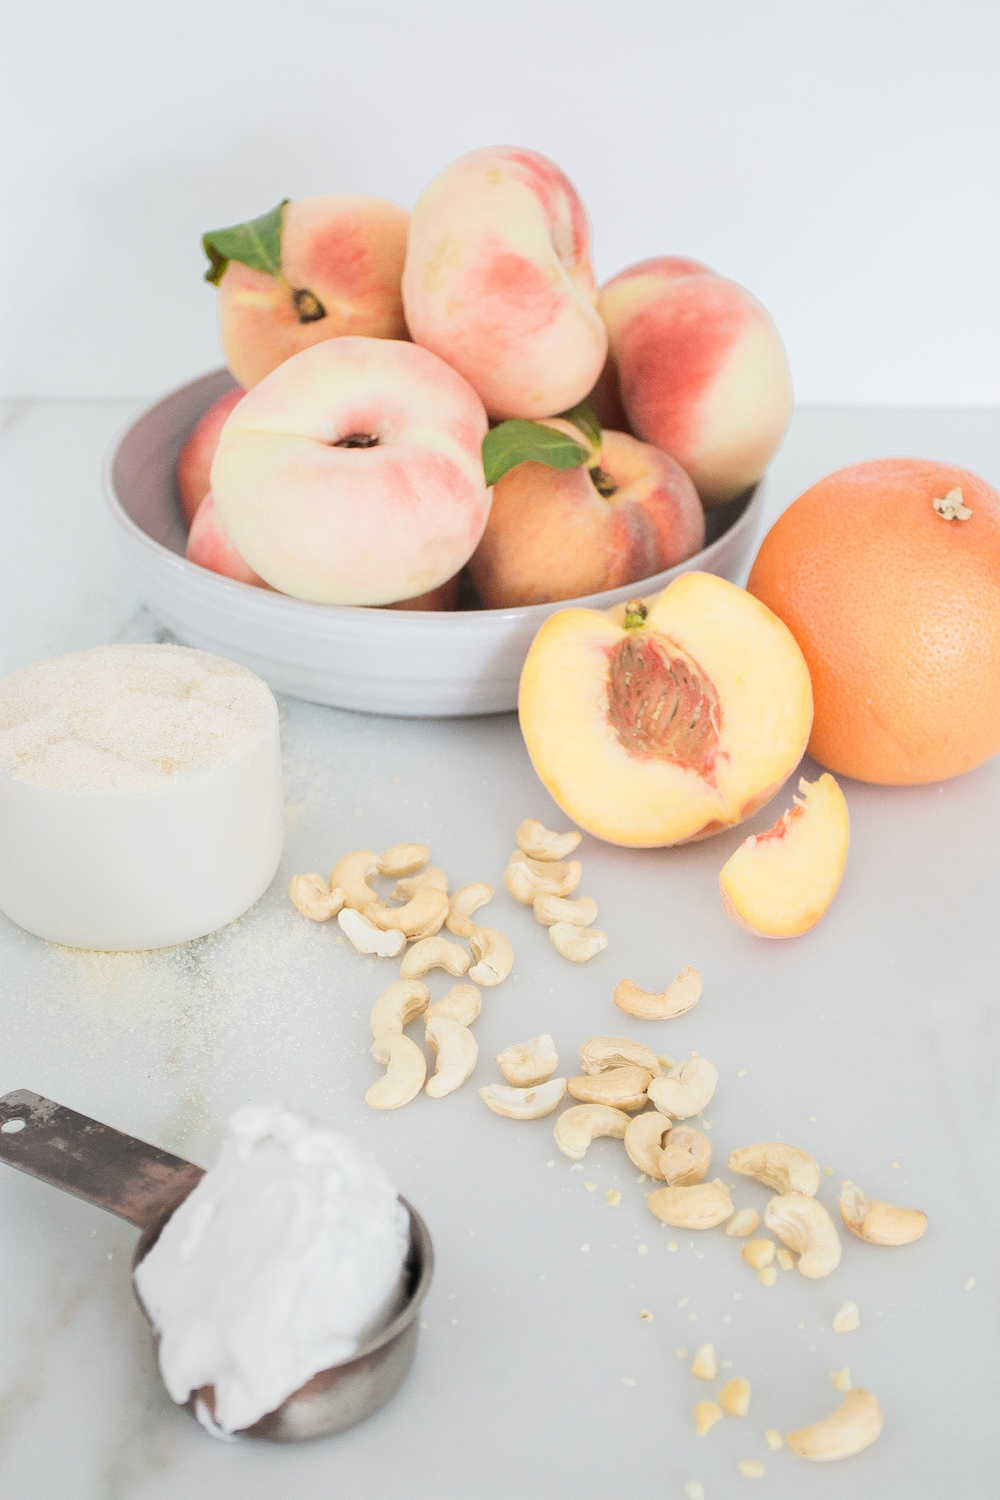 Popsicles Summer Grapefruit Cashews Coconut Peach Monika Hibbs